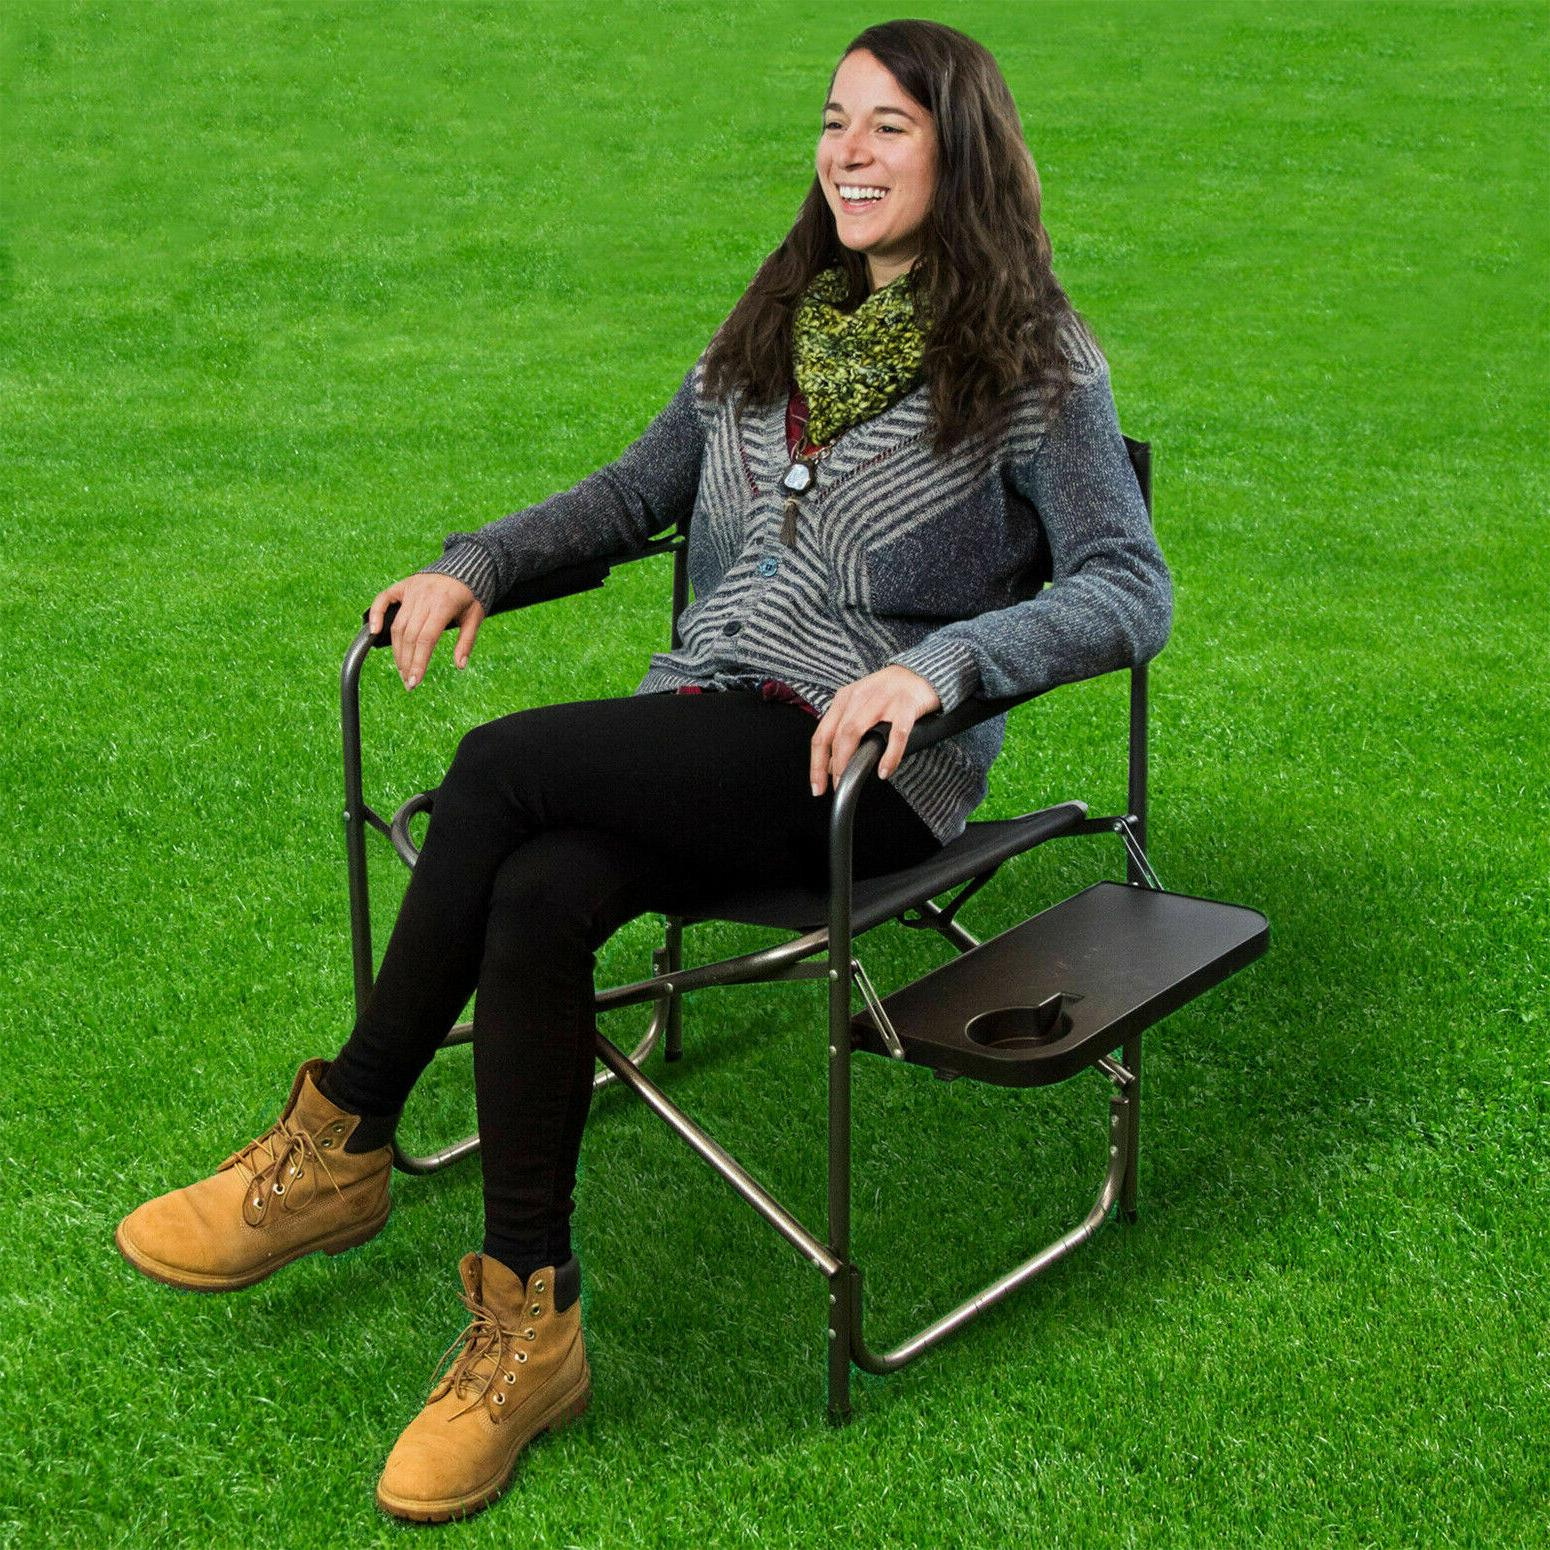 foldable directors chair travel camping seat backyard